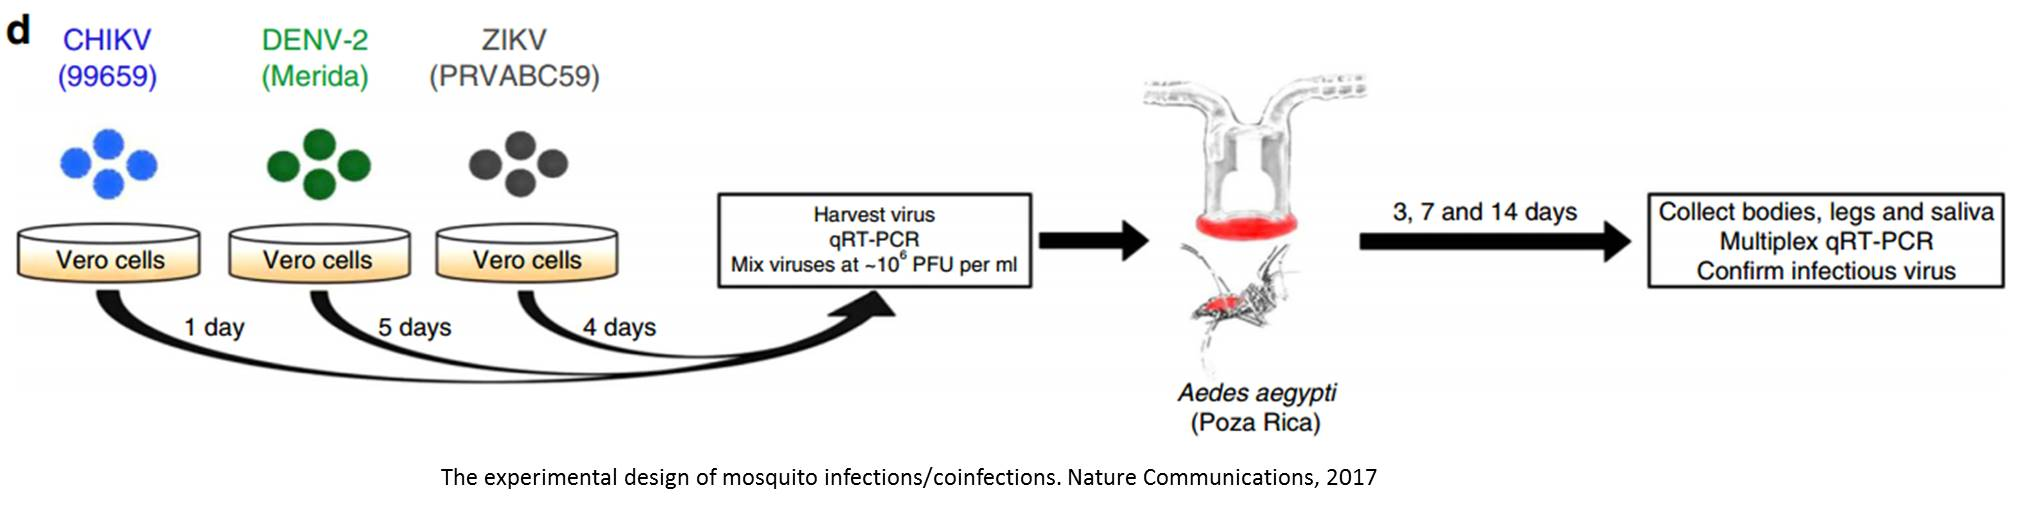 Mosquitoes could transmit multiple viruses simultaneously